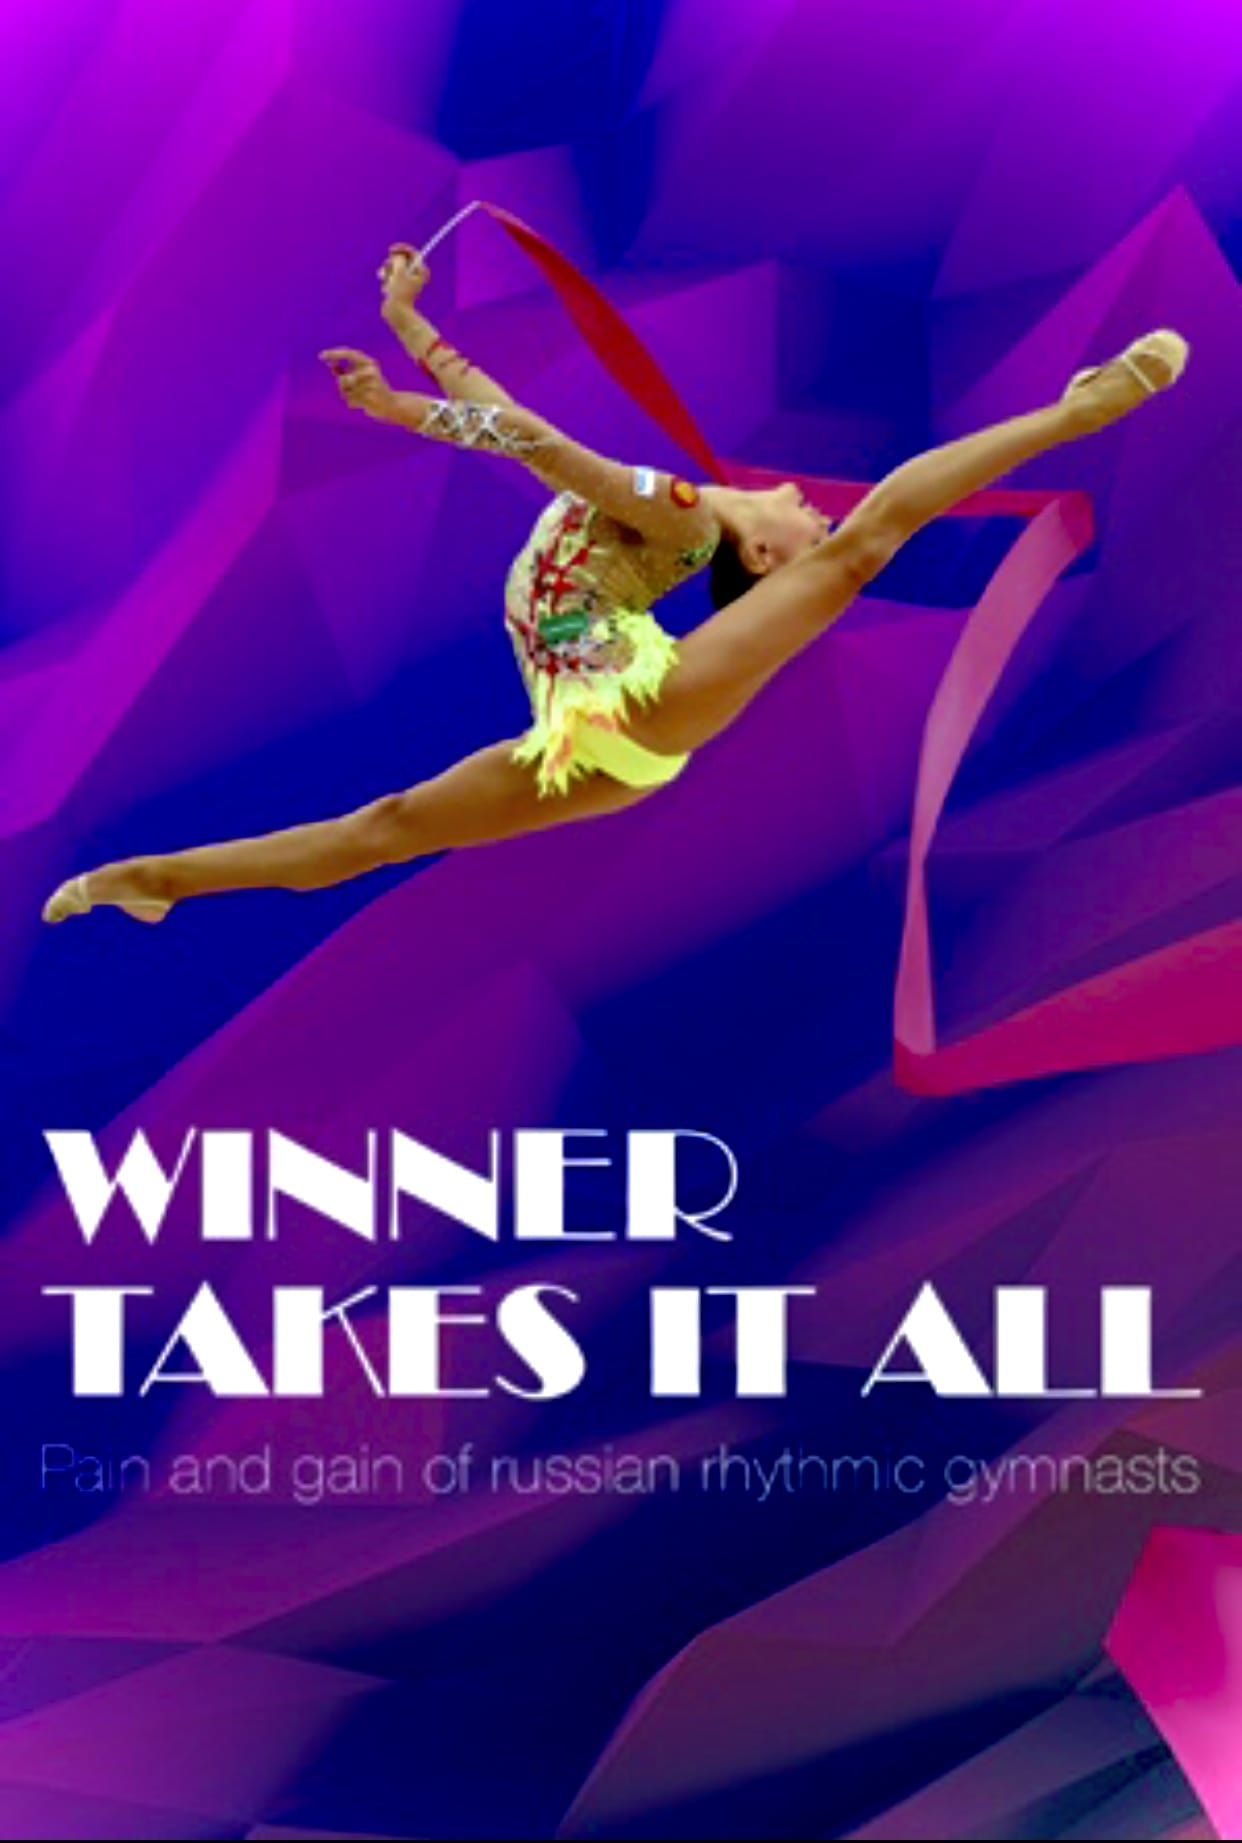 Winner Takes It All: Pain and Gain of Russian Rhythmic Gymnasts (2015)